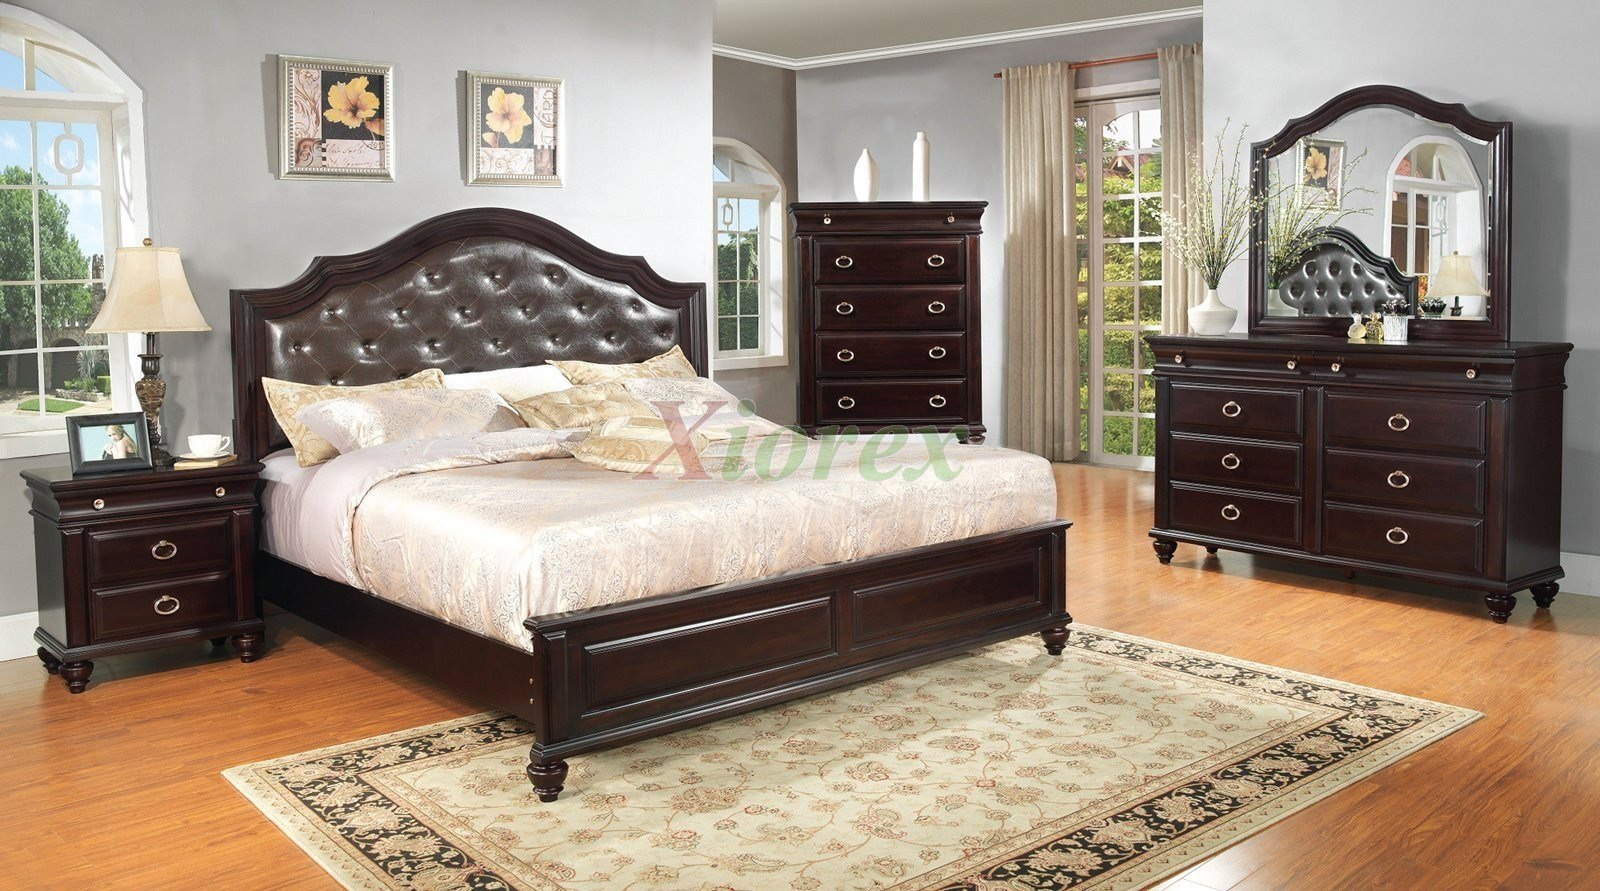 Best Platform Bedroom Furniture Set With Leather Headboard 146 With Pictures